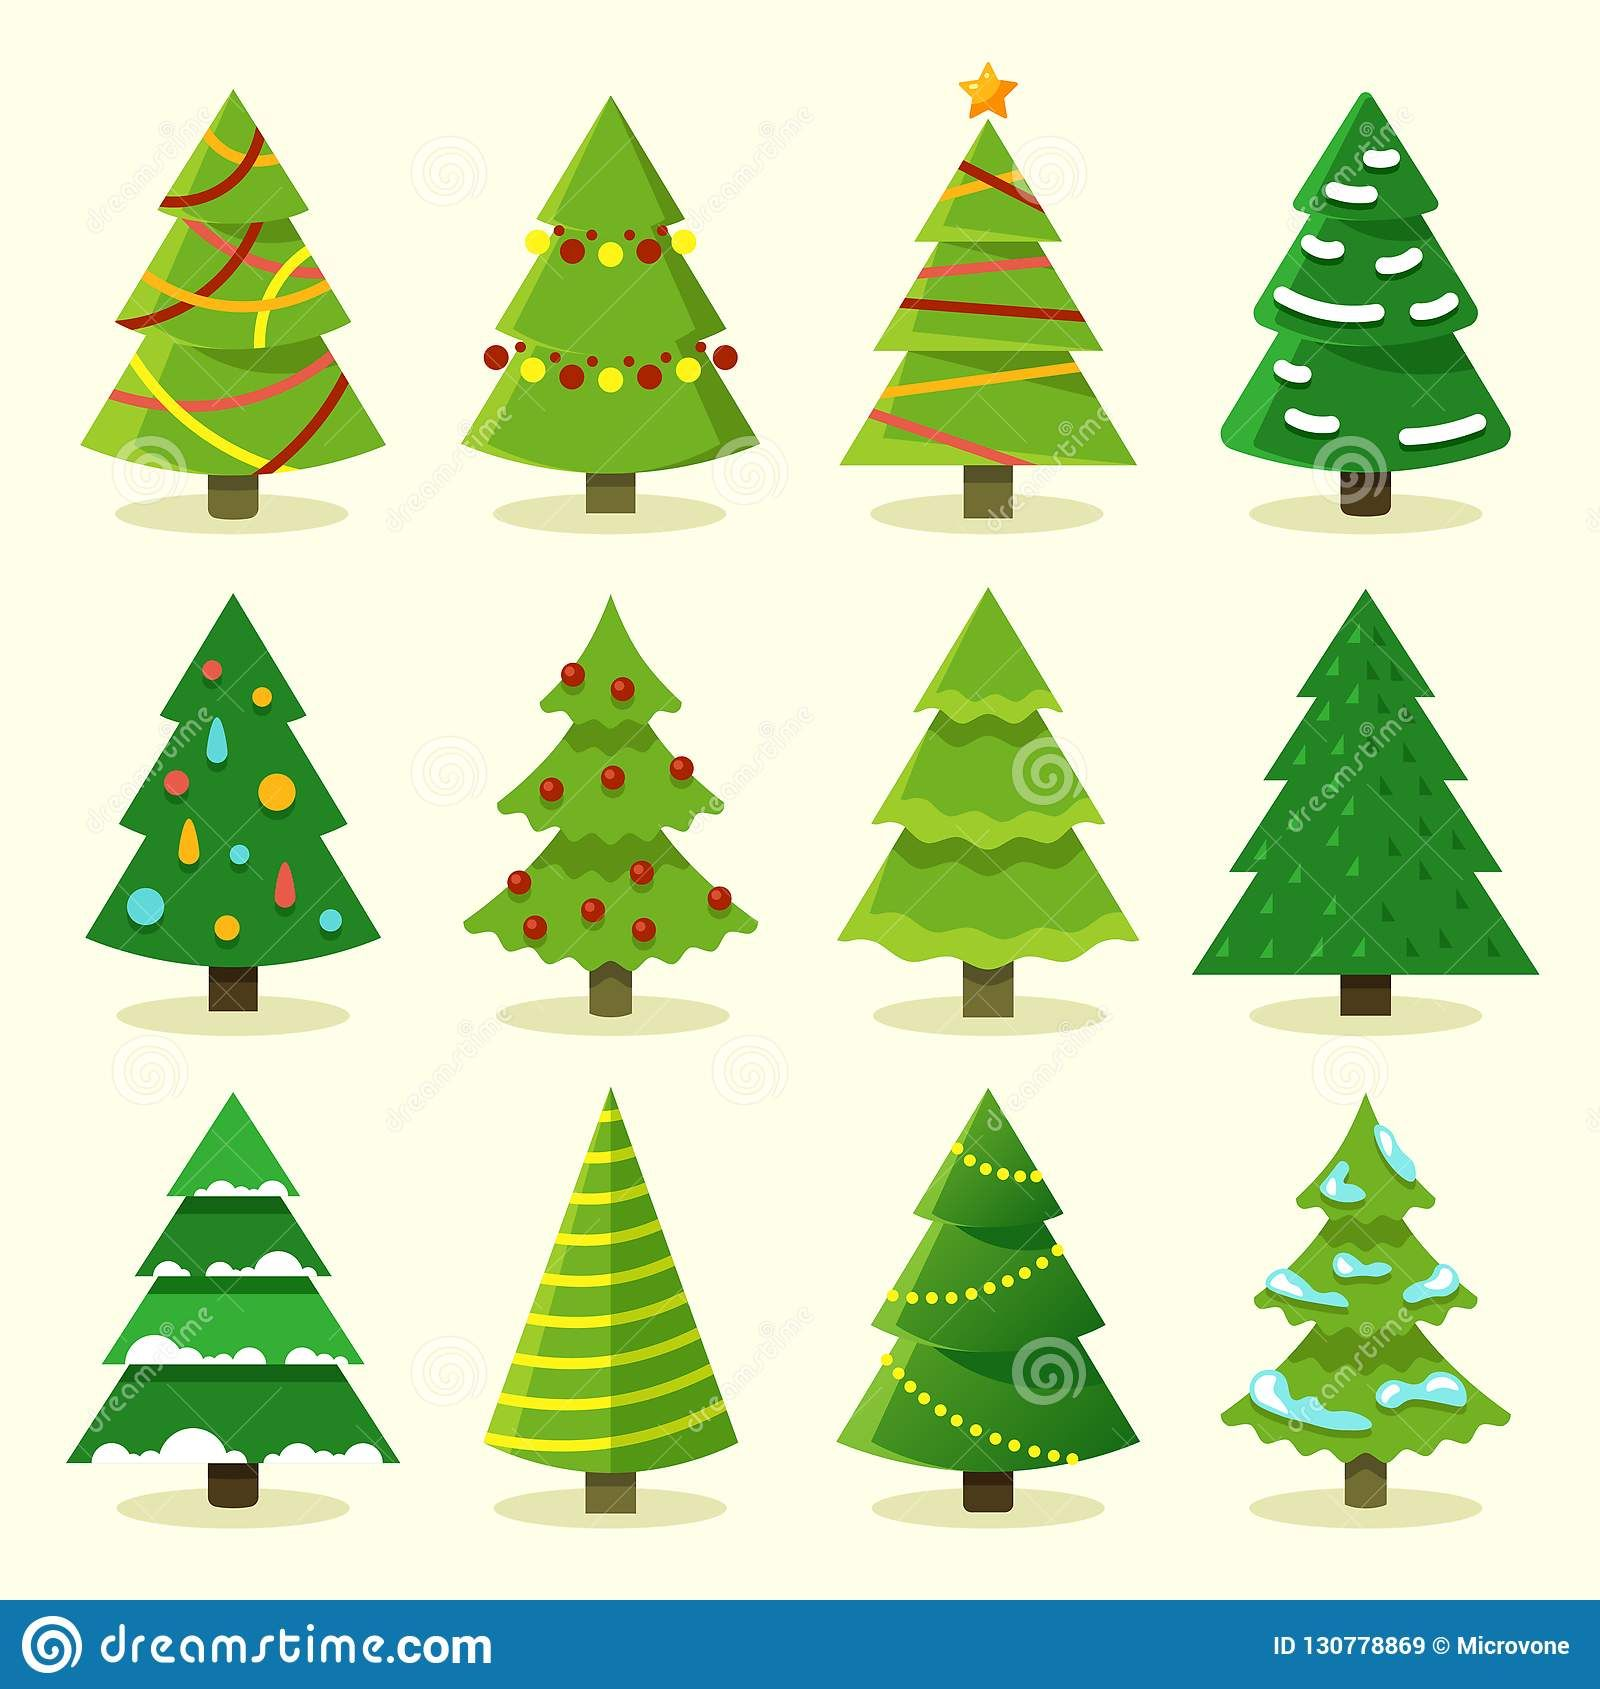 Pin By Dreamstime Stock Photos On Graphic Design Cartoon Christmas Tree Christmas Drawing Christmas Stickers